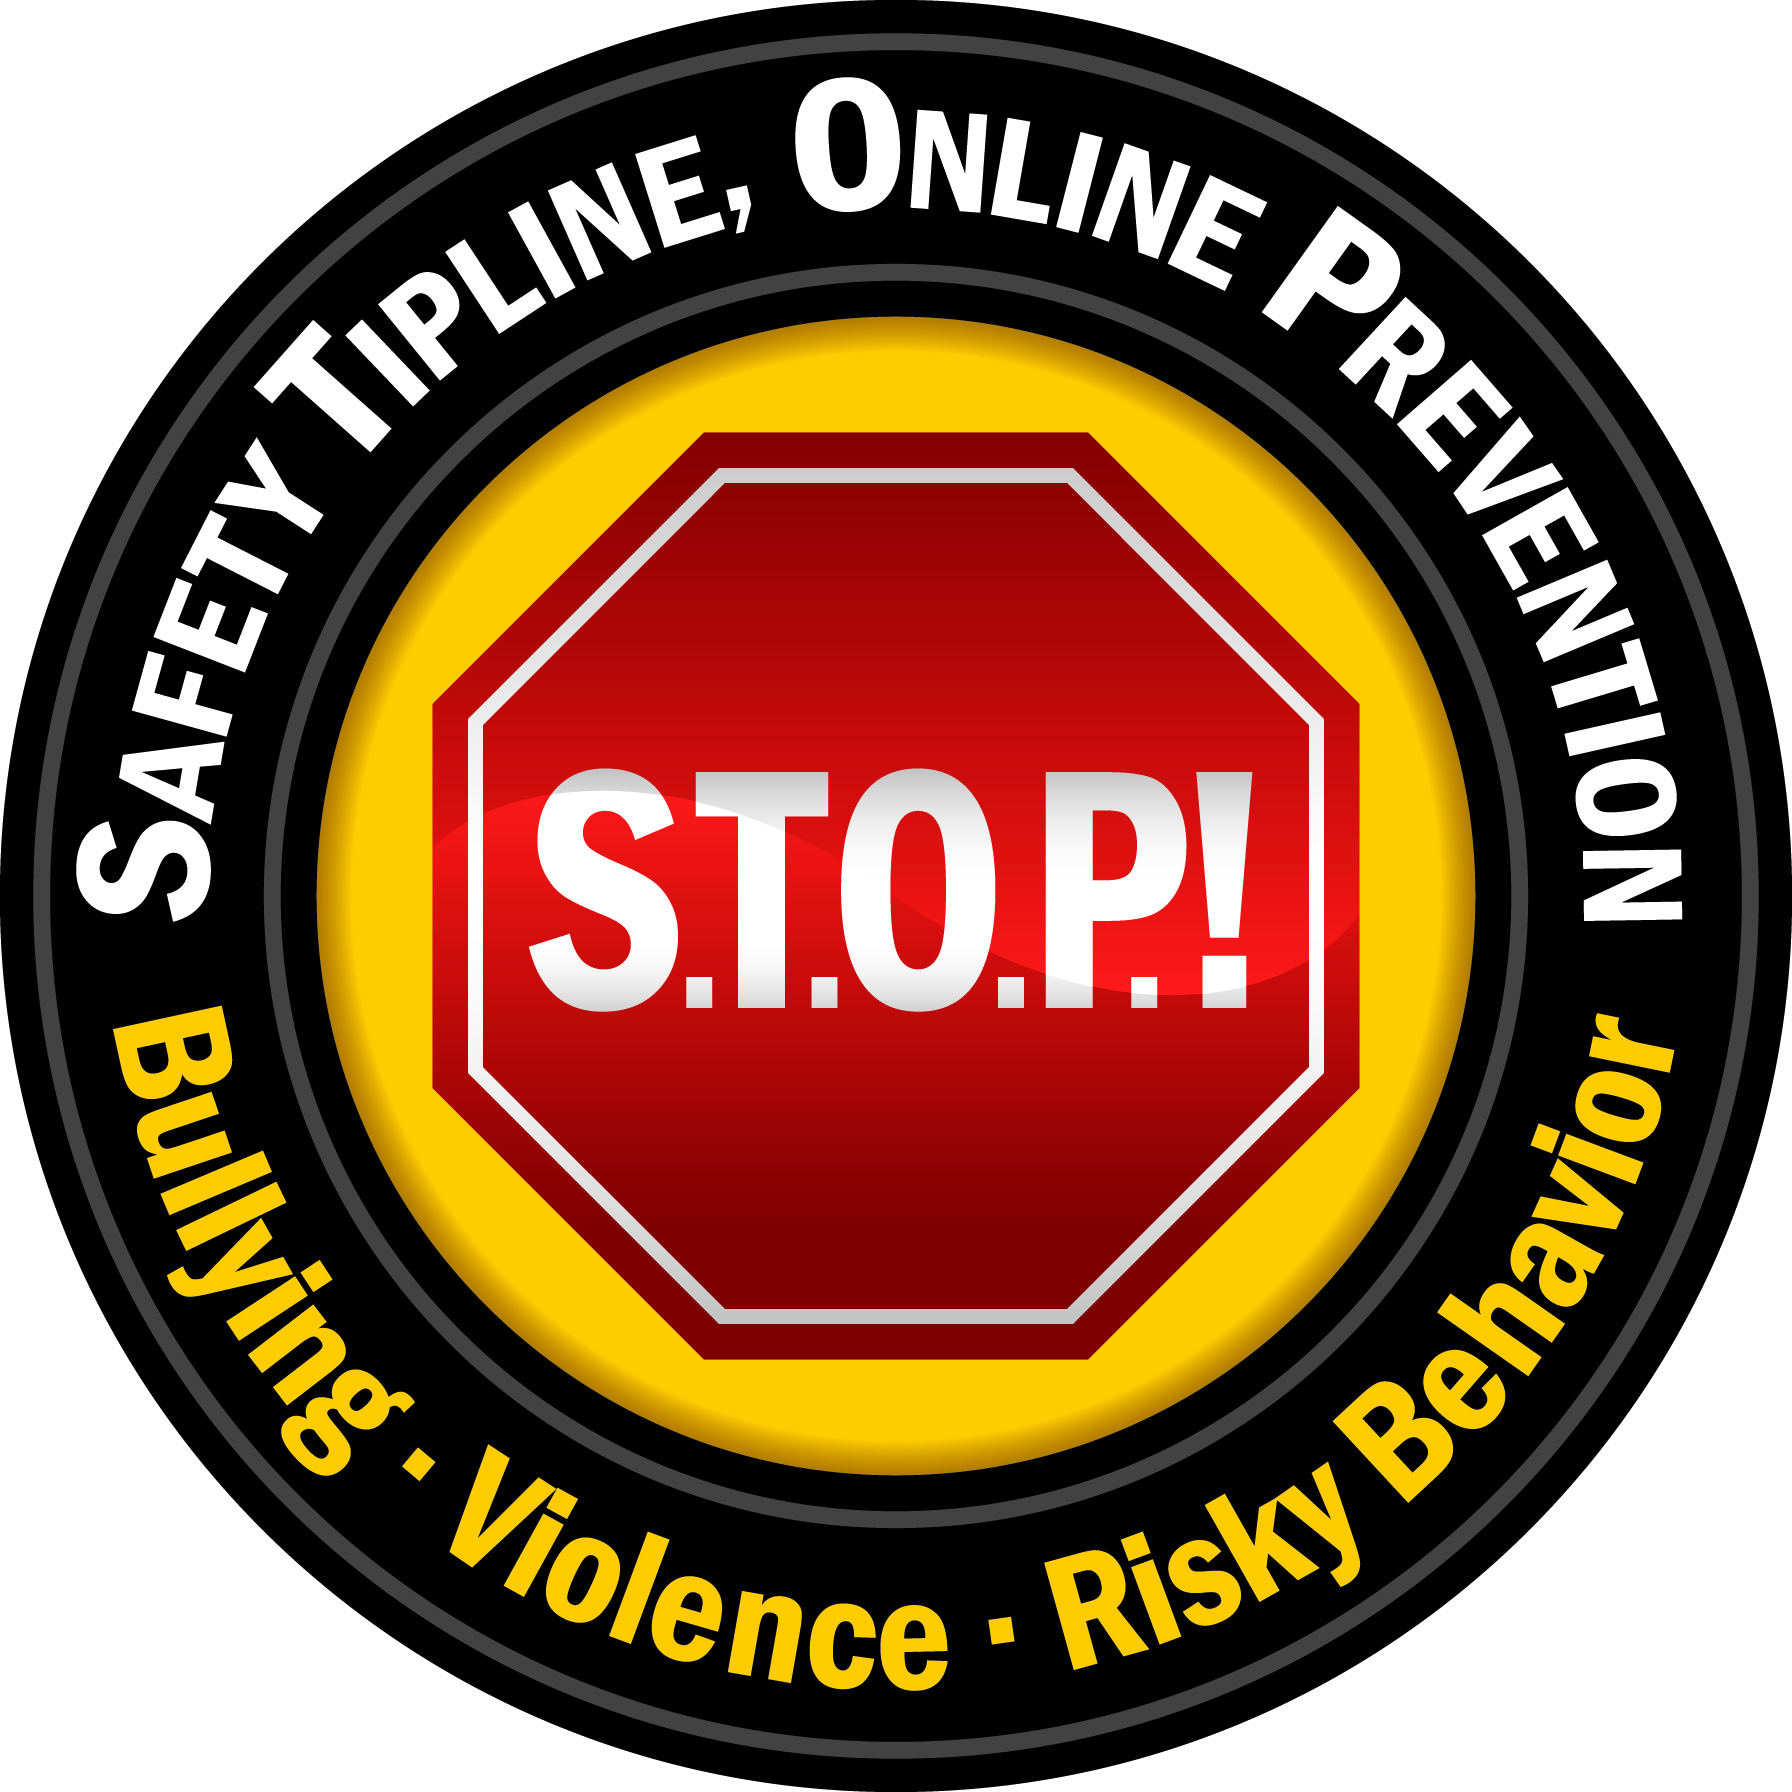 Safety Tipline, Online Prevention